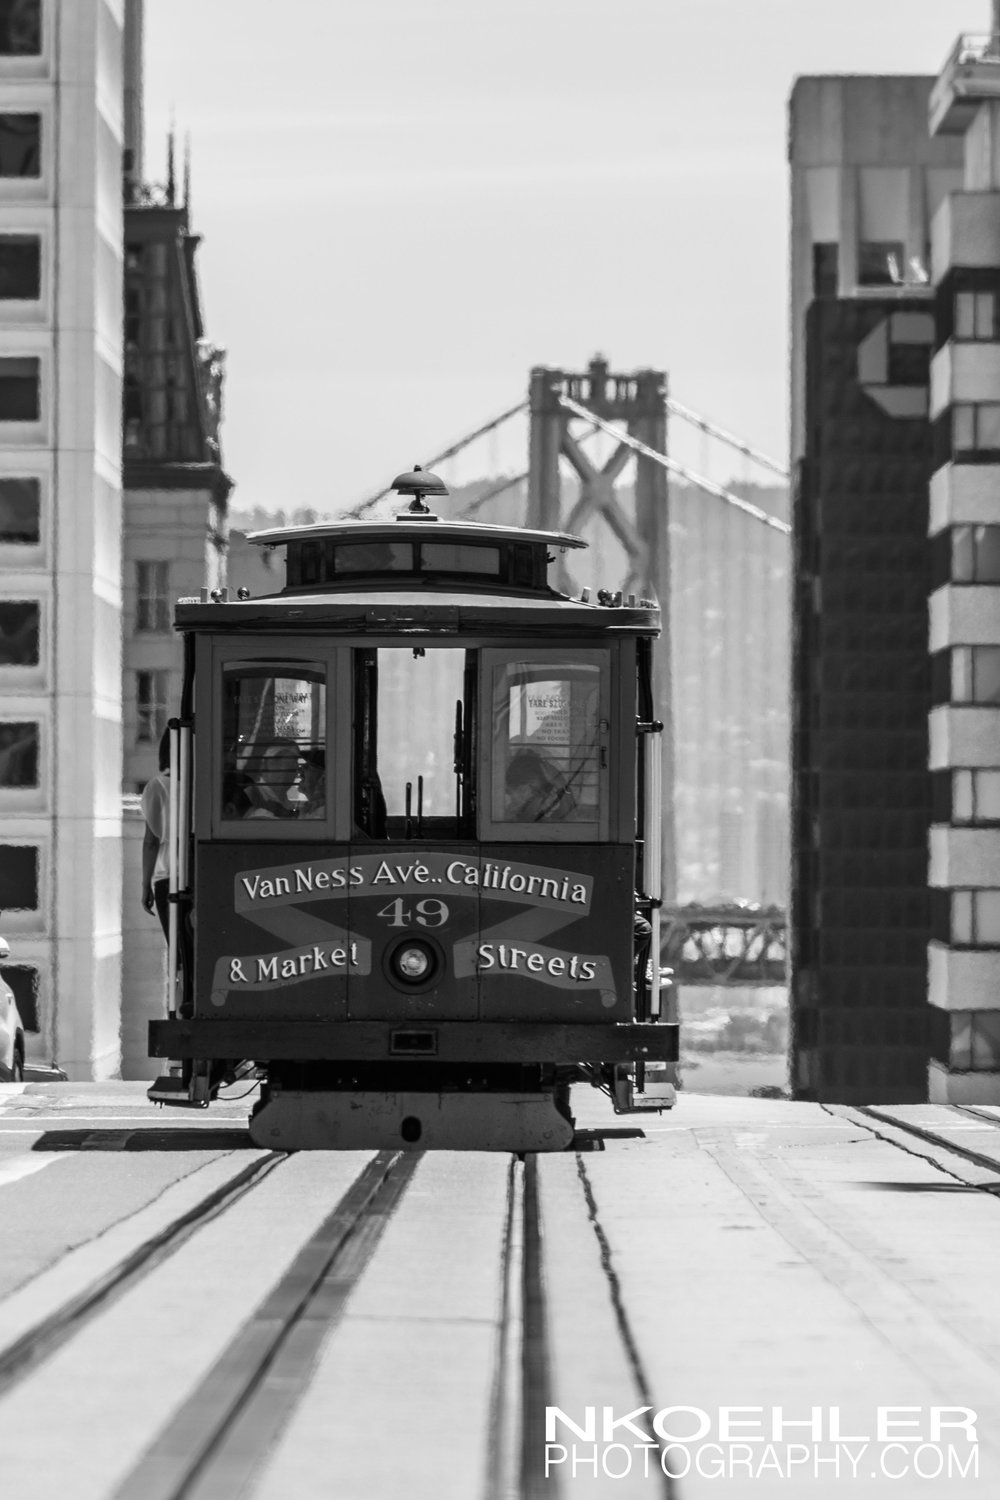 Slept in and enjoyed Fishermans Wharf. In afternoon took the Van Ness and California cable car to this destination where I was able to capture this shot of the cable car in front of the Bay Bridge in downtown San Francisco.